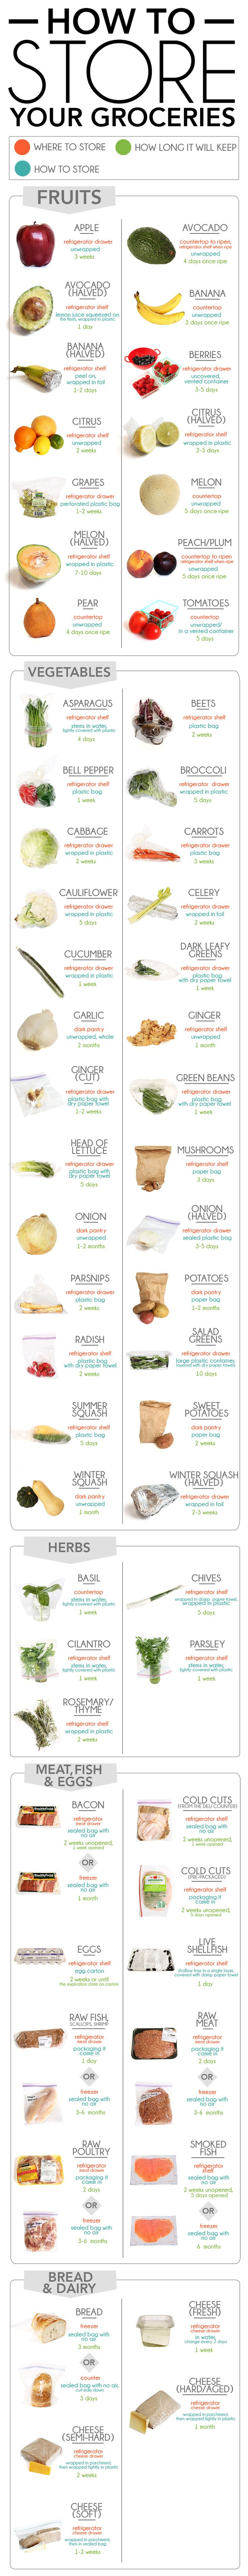 How to store your groceries #infographics Palatine Pediatric Dentistry | #Palatine | #IL | www.palatinepediatricdentist.com